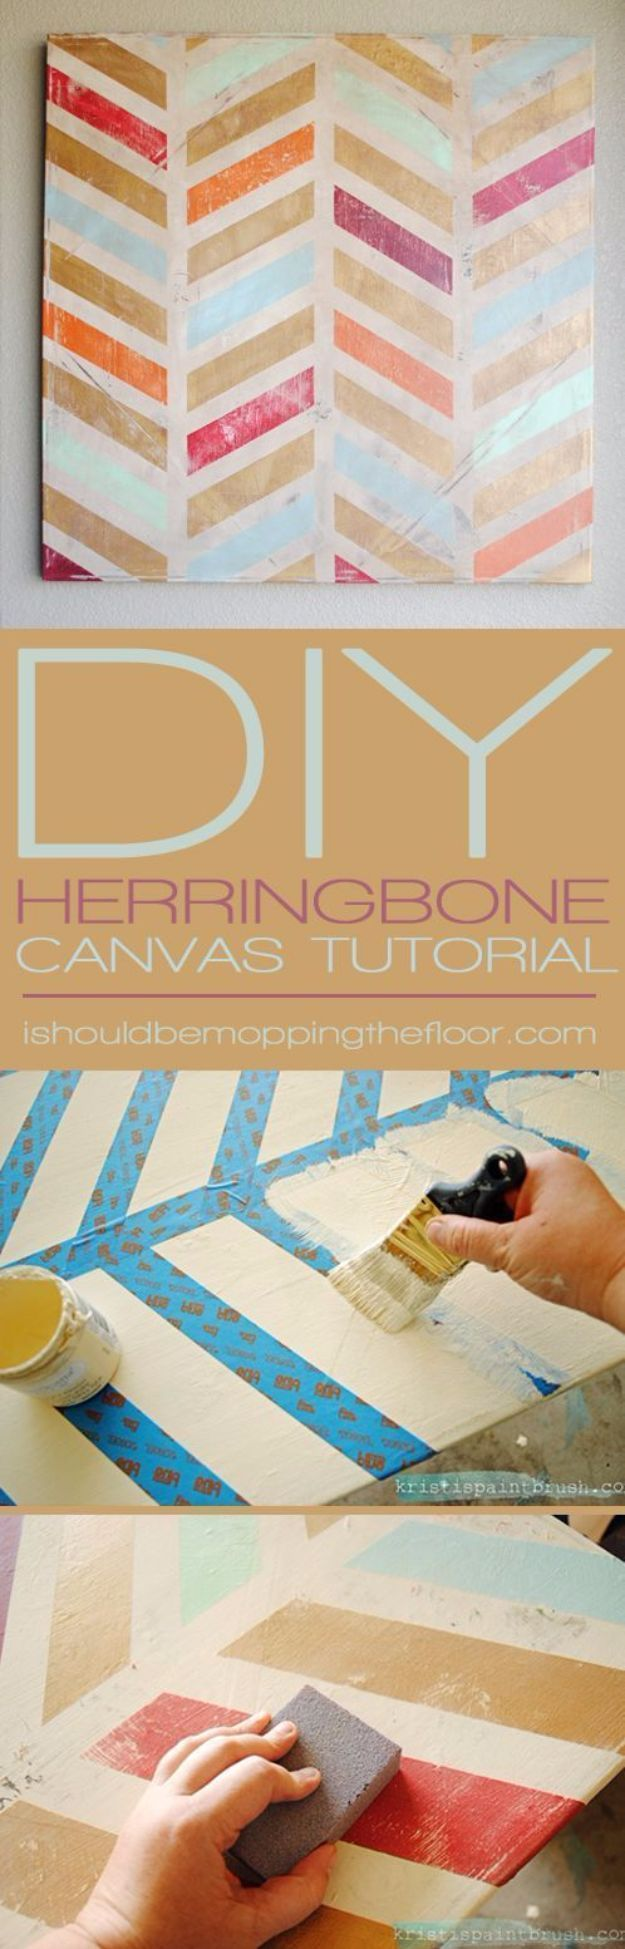 DIY Wall Art Ideas and Do It Yourself Wall Decor for Living Room, Bedroom, Bathroom, Teen Rooms | DIY Herringbone Canvas Art | Cheap Ideas for Those On A Budget. Paint Awesome Hanging Pictures With These Easy Step By Step Tutorials and Projects | diyjoy.com/...